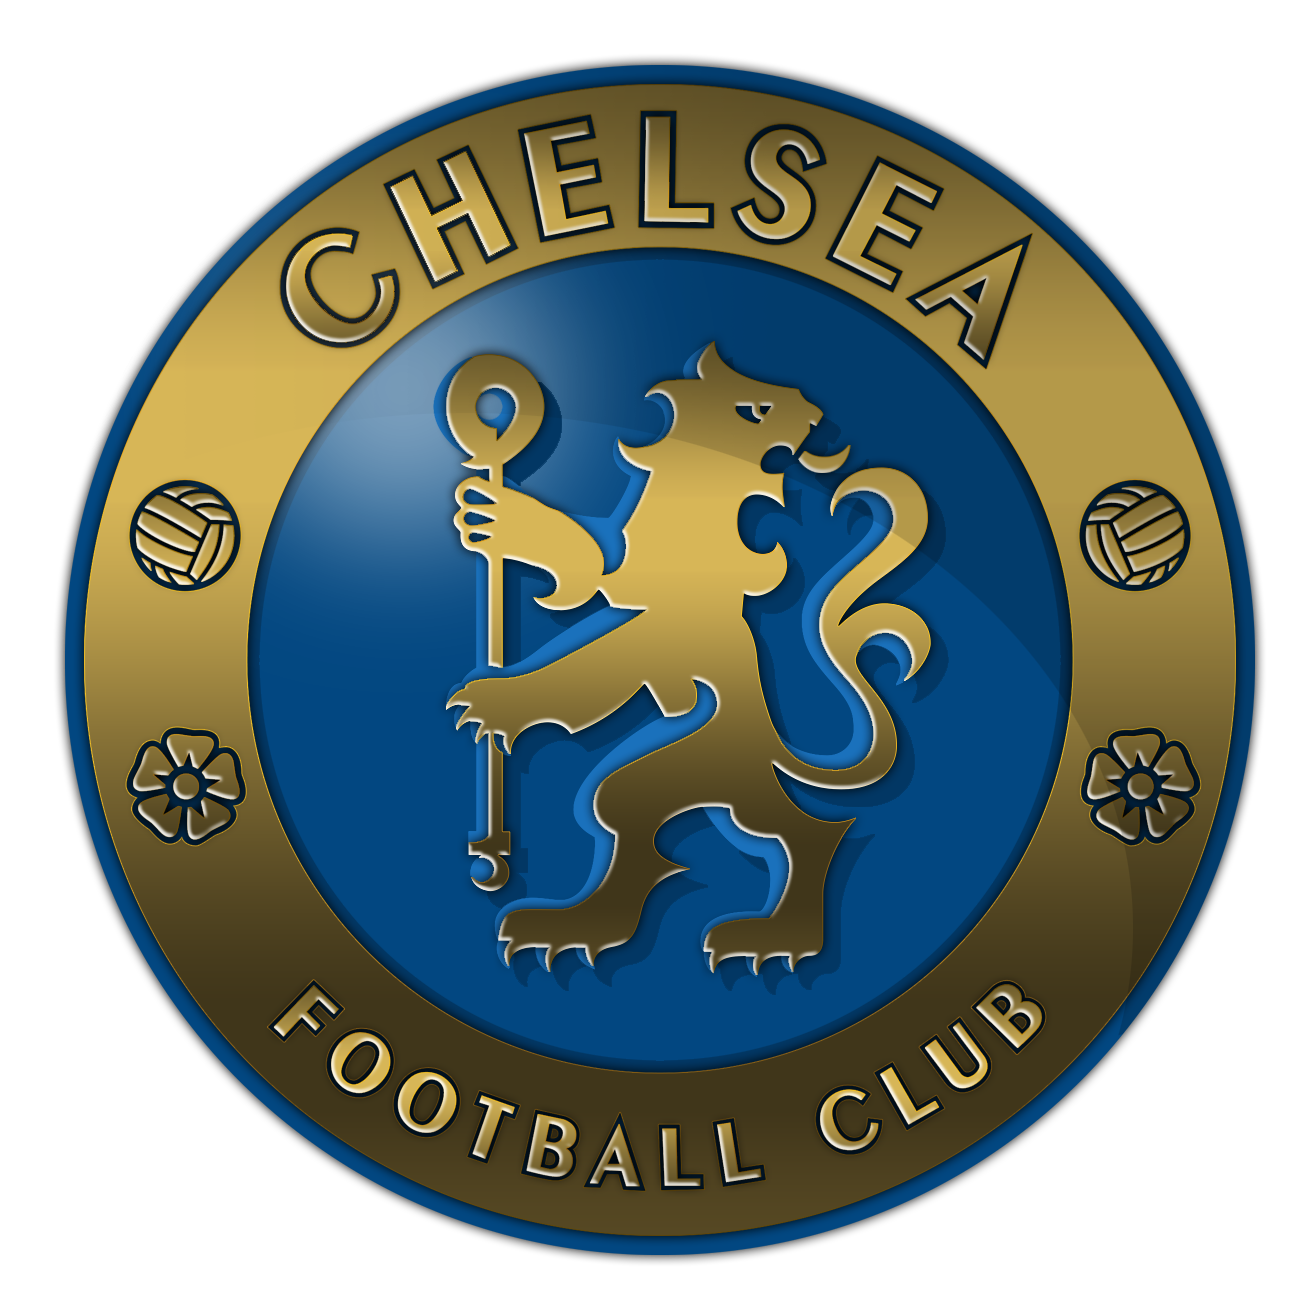 Chelsea Fc Escudo Png : Milan statement released after Tomori leaves ...